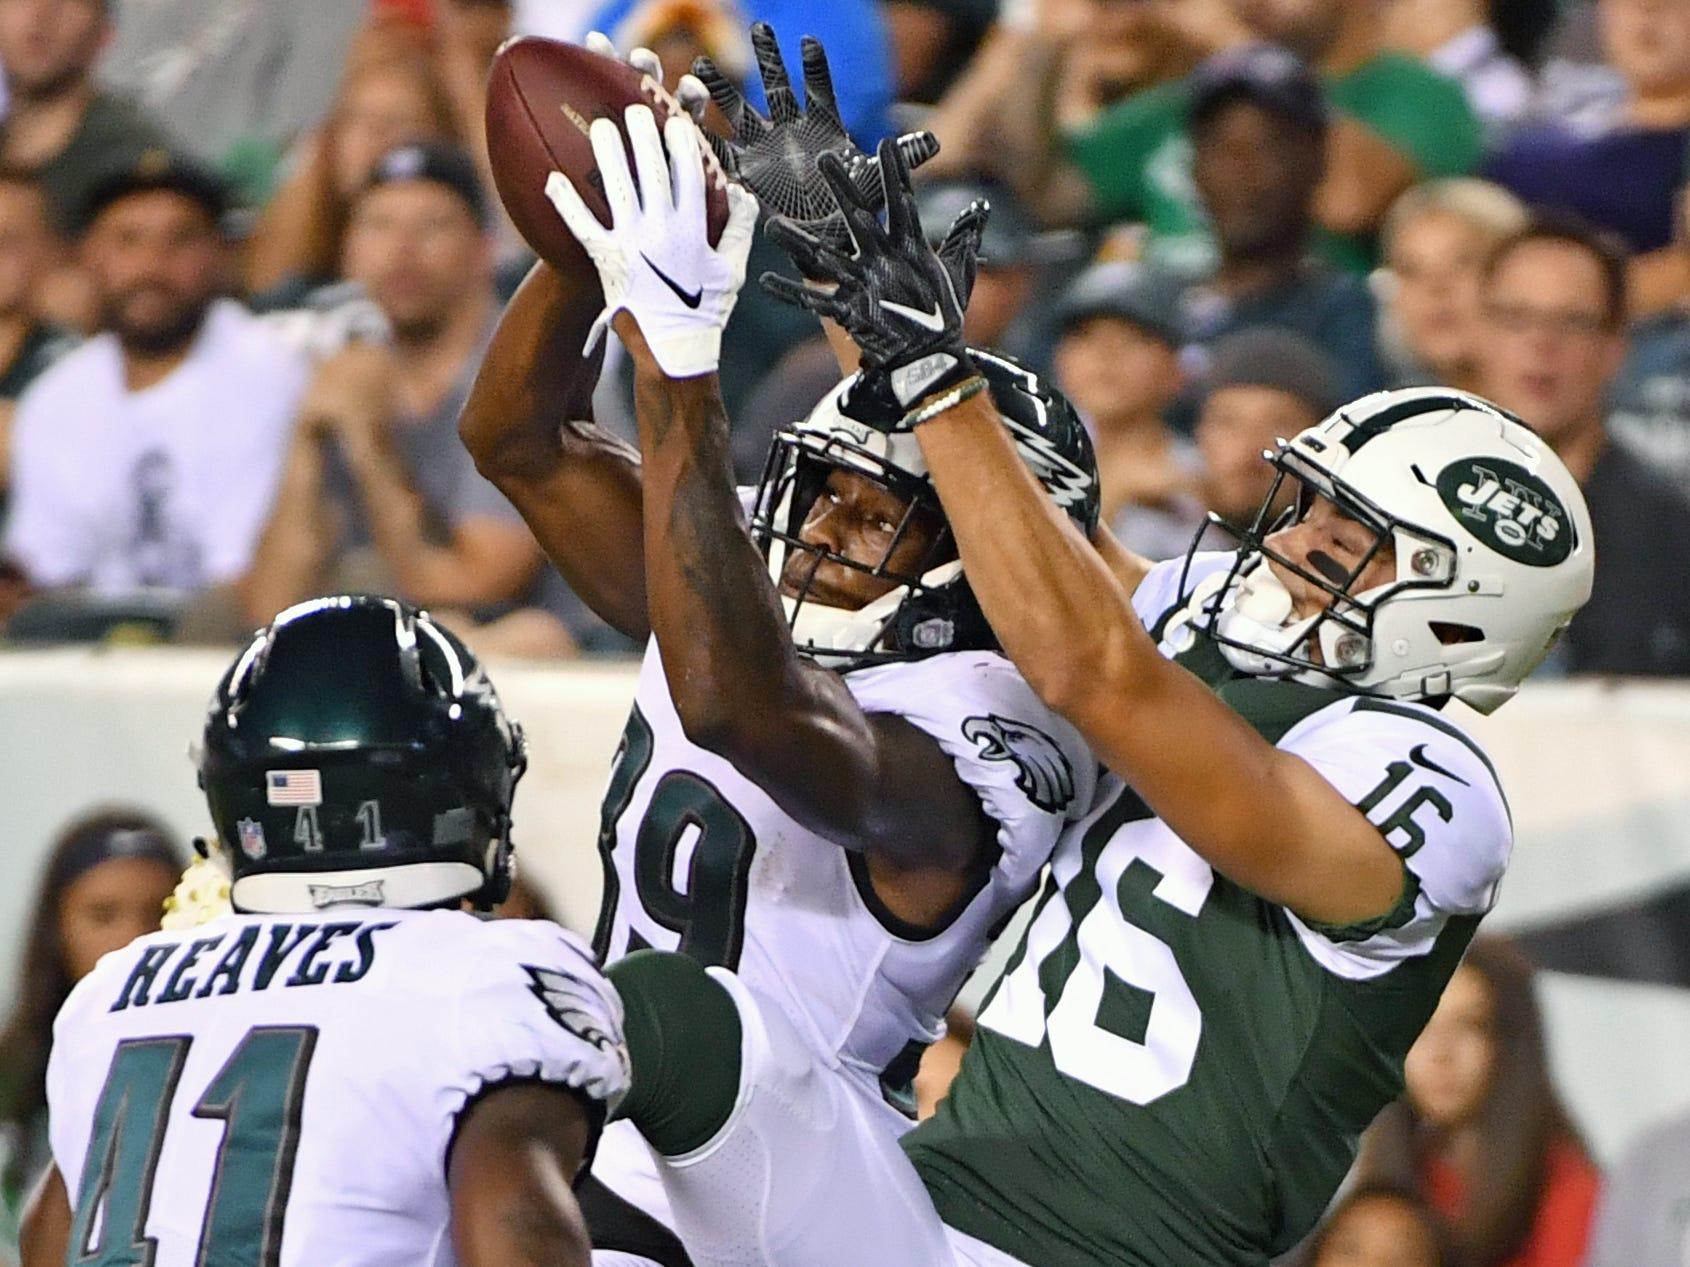 Philadelphia Eagles defensive back Chandon Sullivan (39) intercepts a pass intended for New York Jets wide receiver Chad Hansen (16) during the first quarter at Lincoln Financial Field.